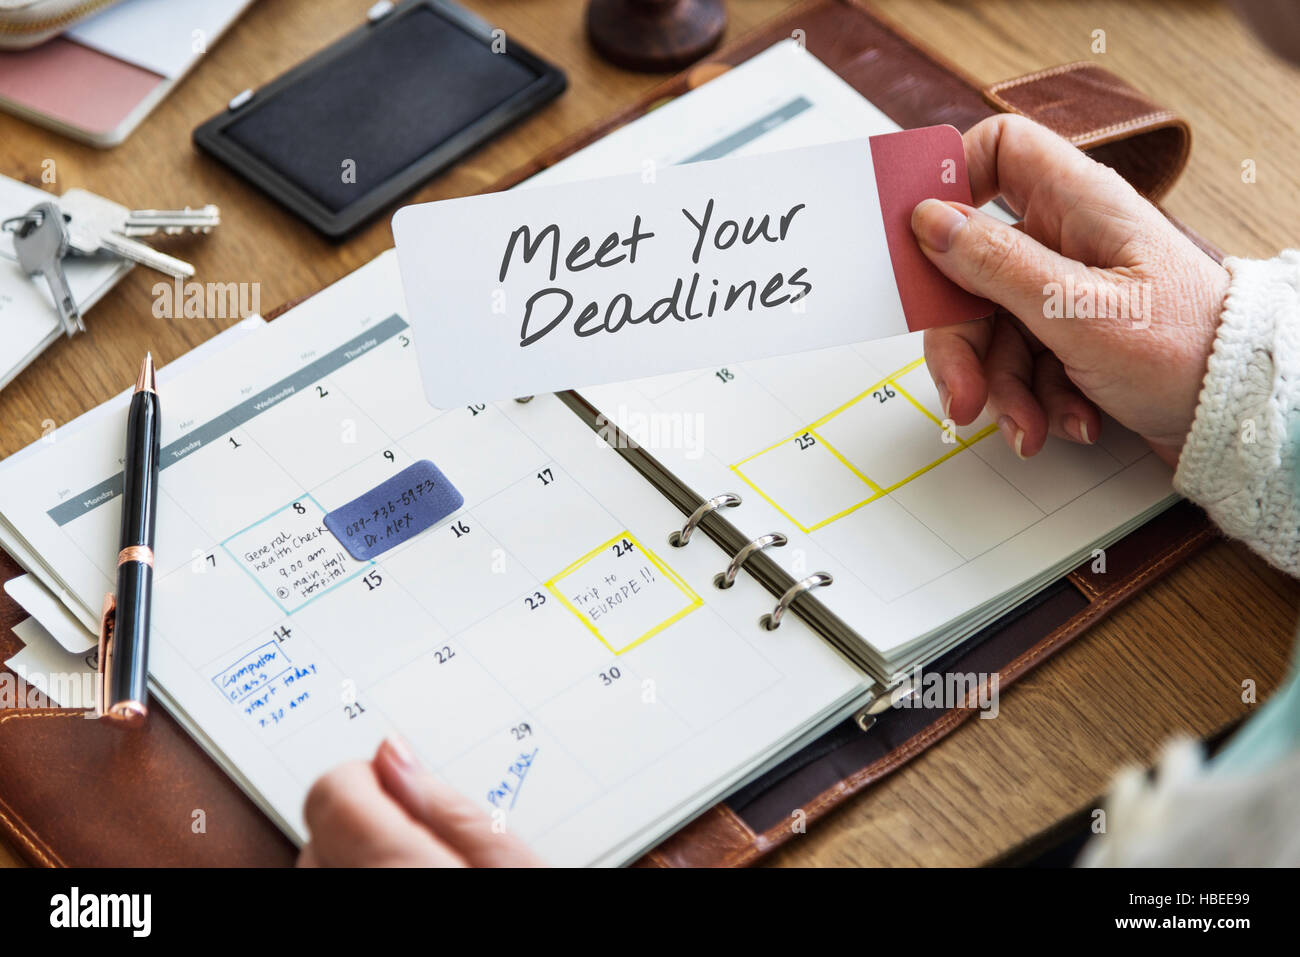 Deadlines Agenda Appointment Assignment To Do Concept - Stock Image